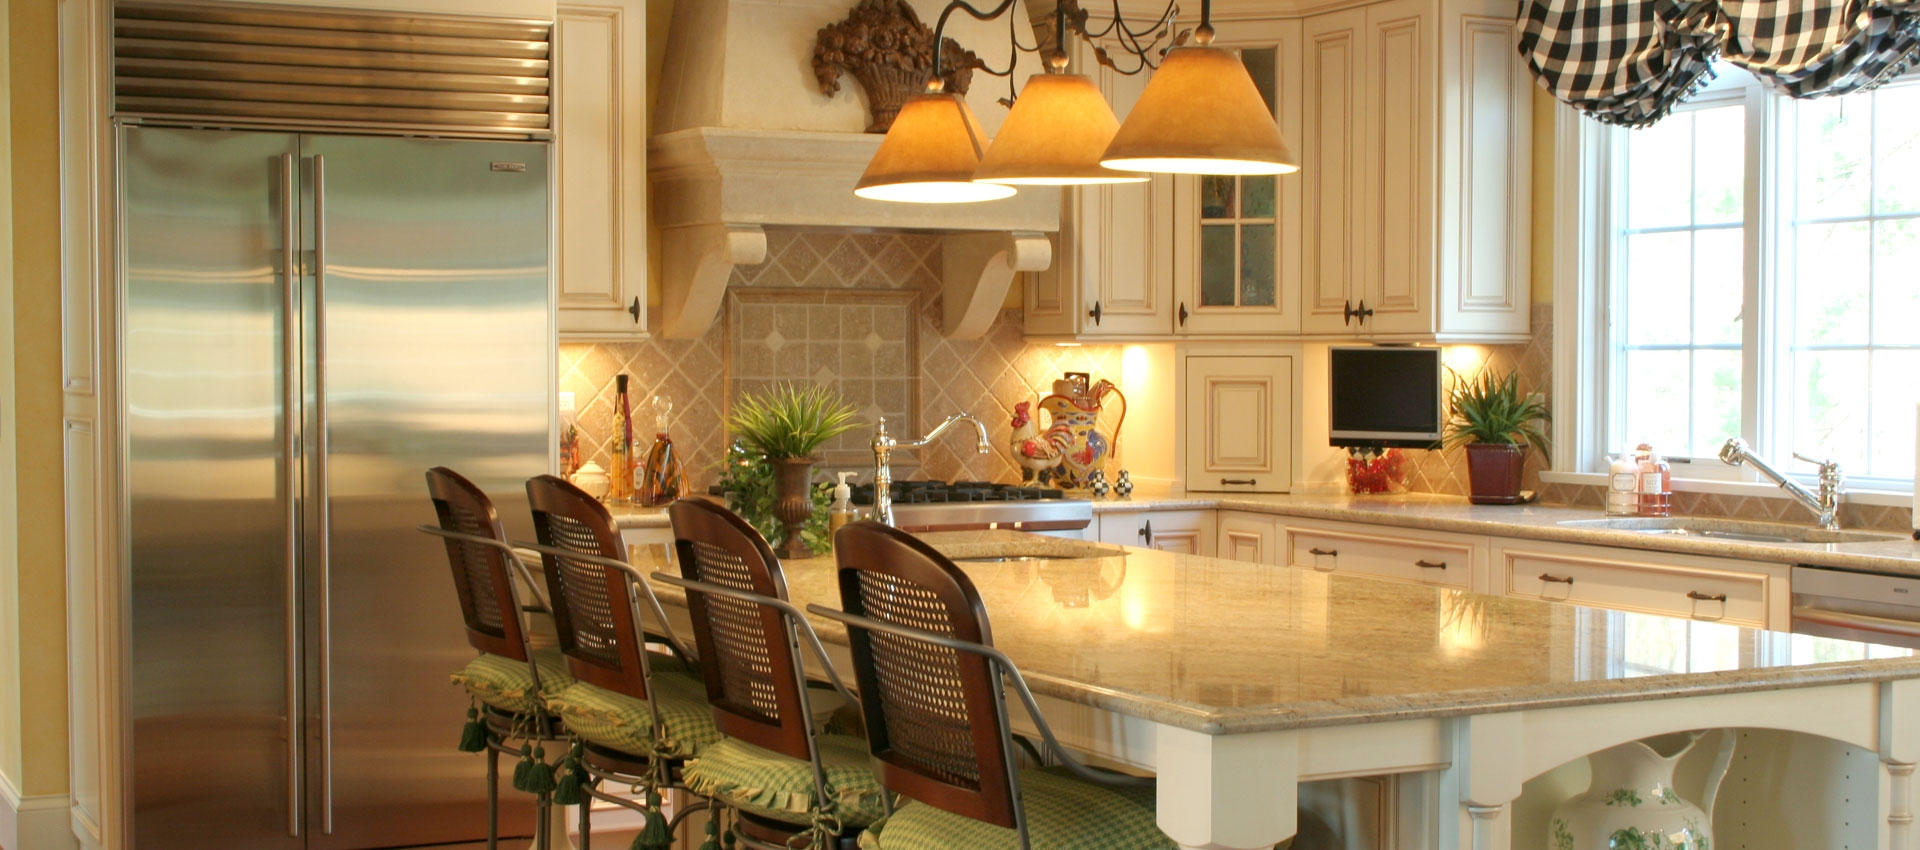 Kitchen Remodeling Projects from E.A. McNulty and Mack Construction